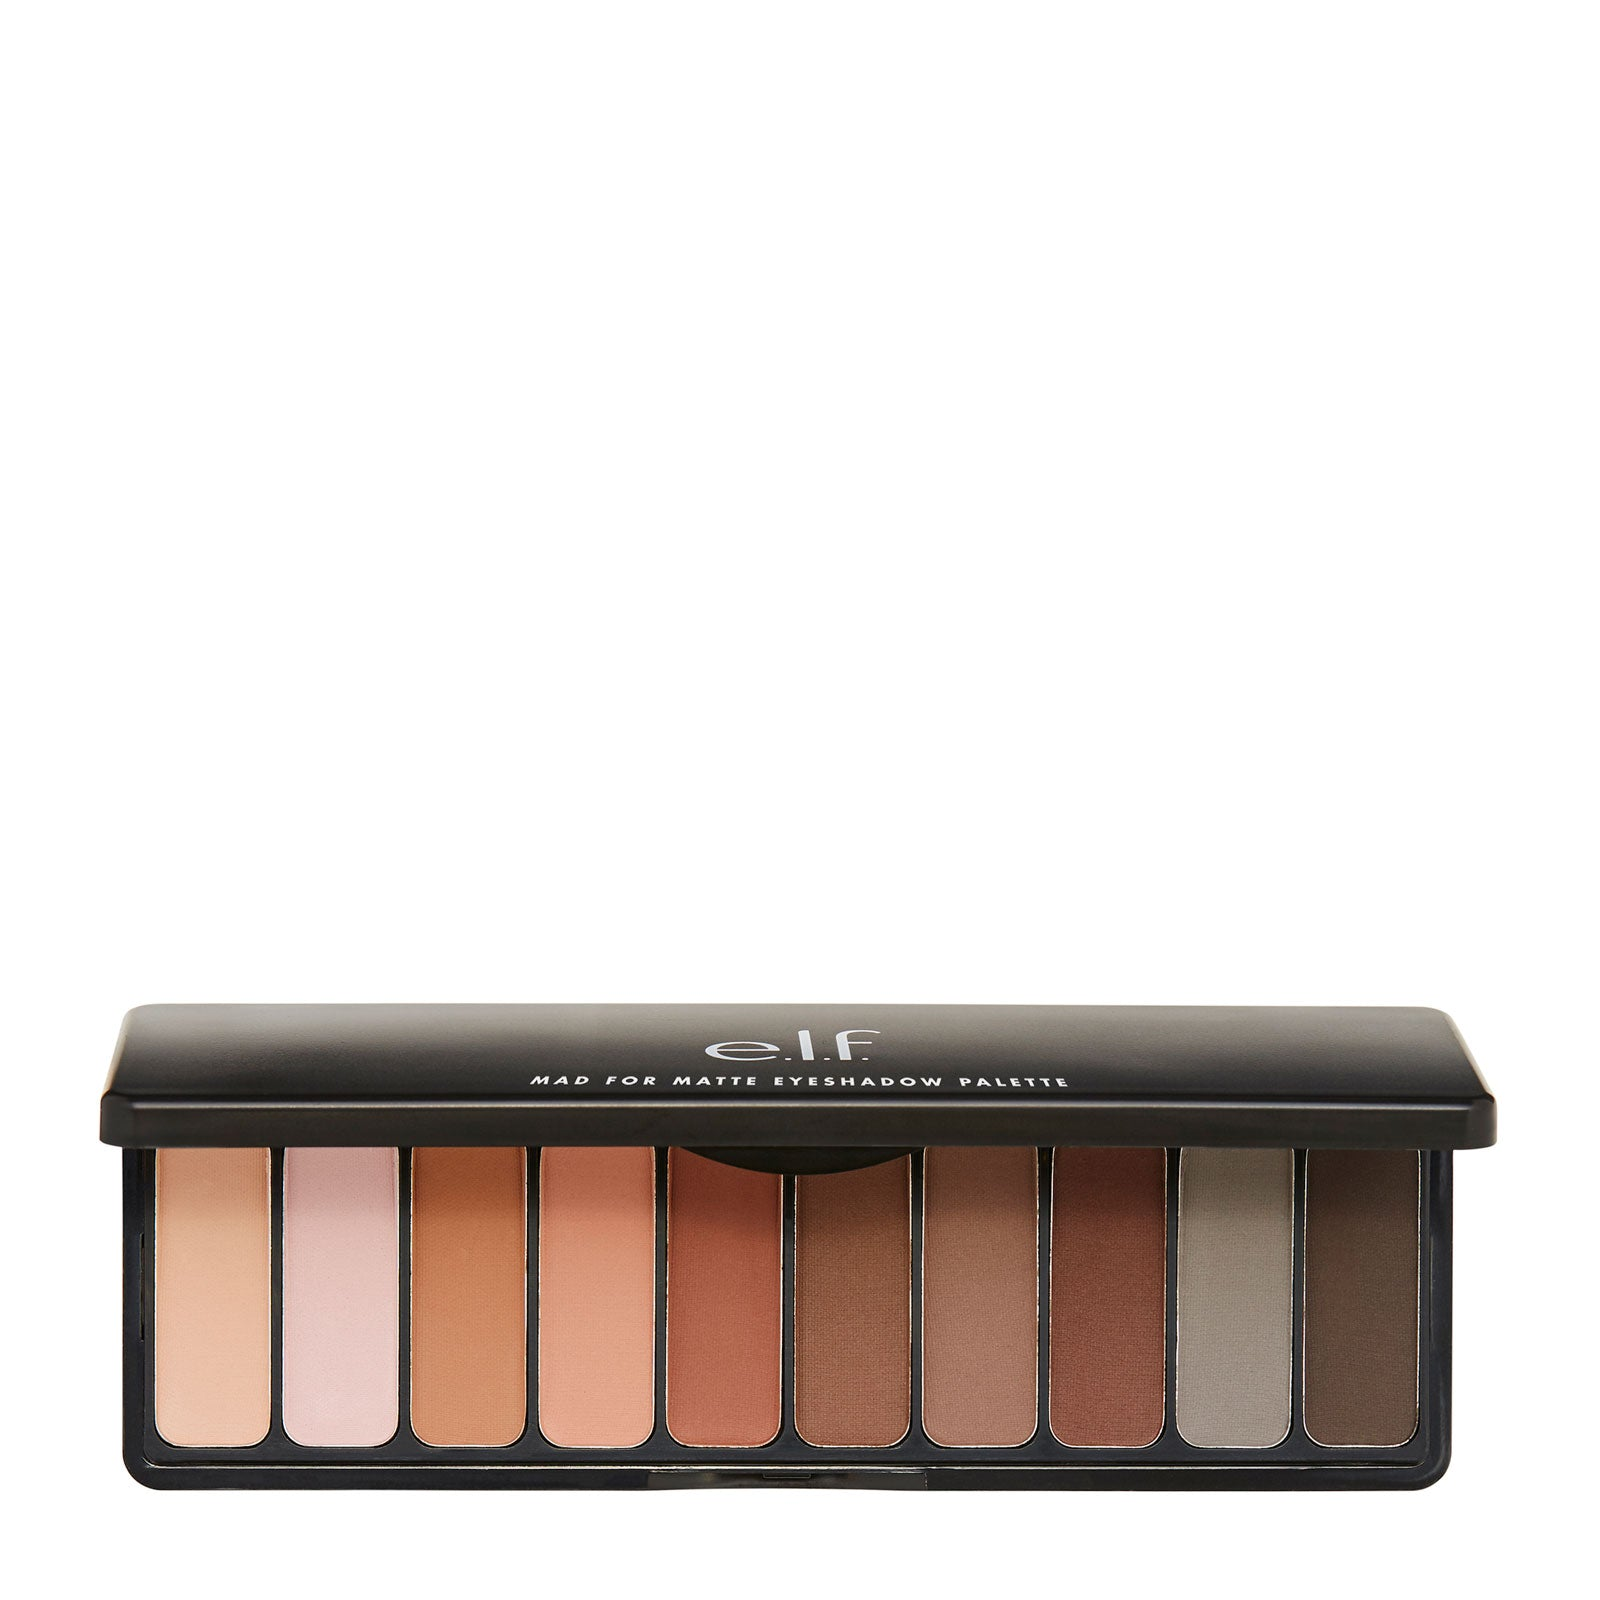 e.l.f. Mad for Matte Eyeshadow Palette - Nude Mood 14g